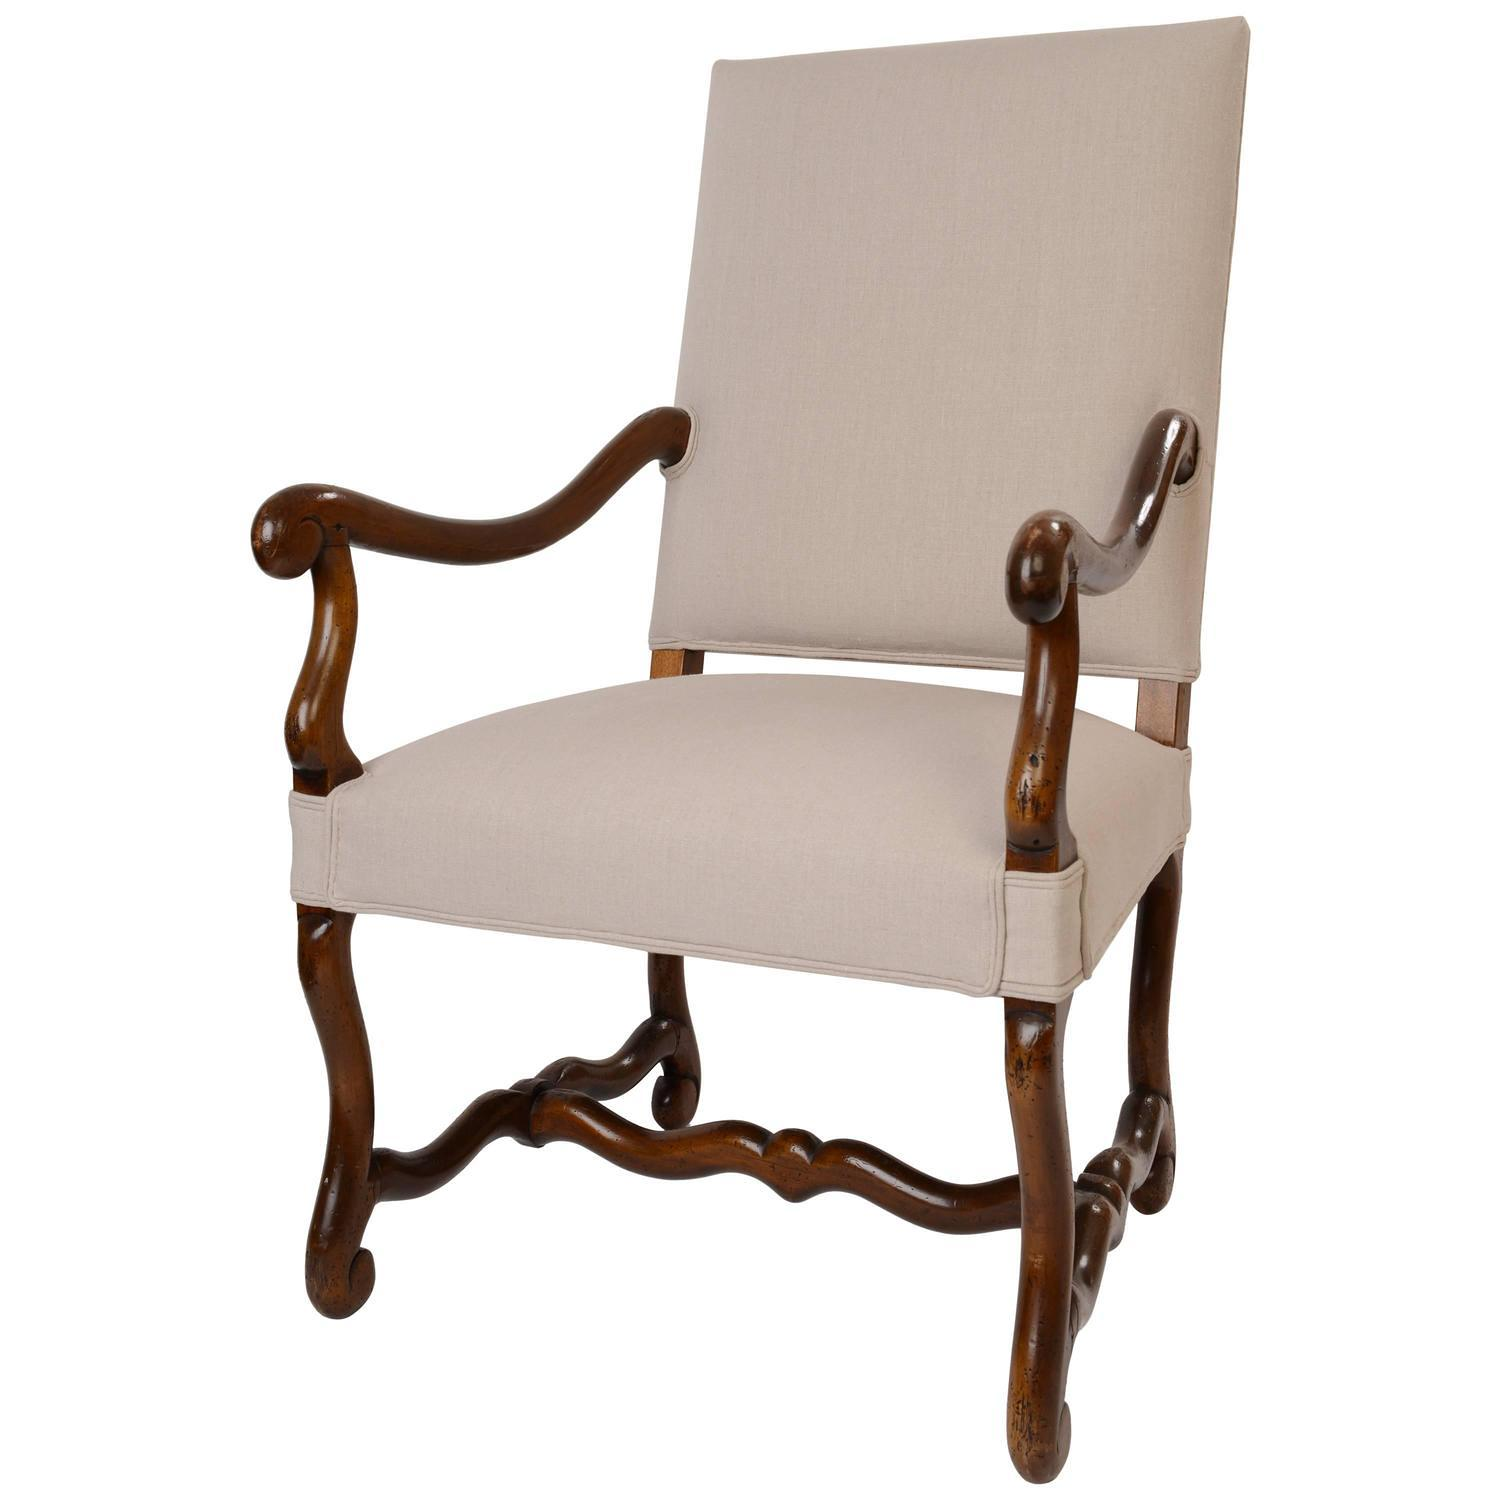 French 18th Century Os de Mouton Armchair